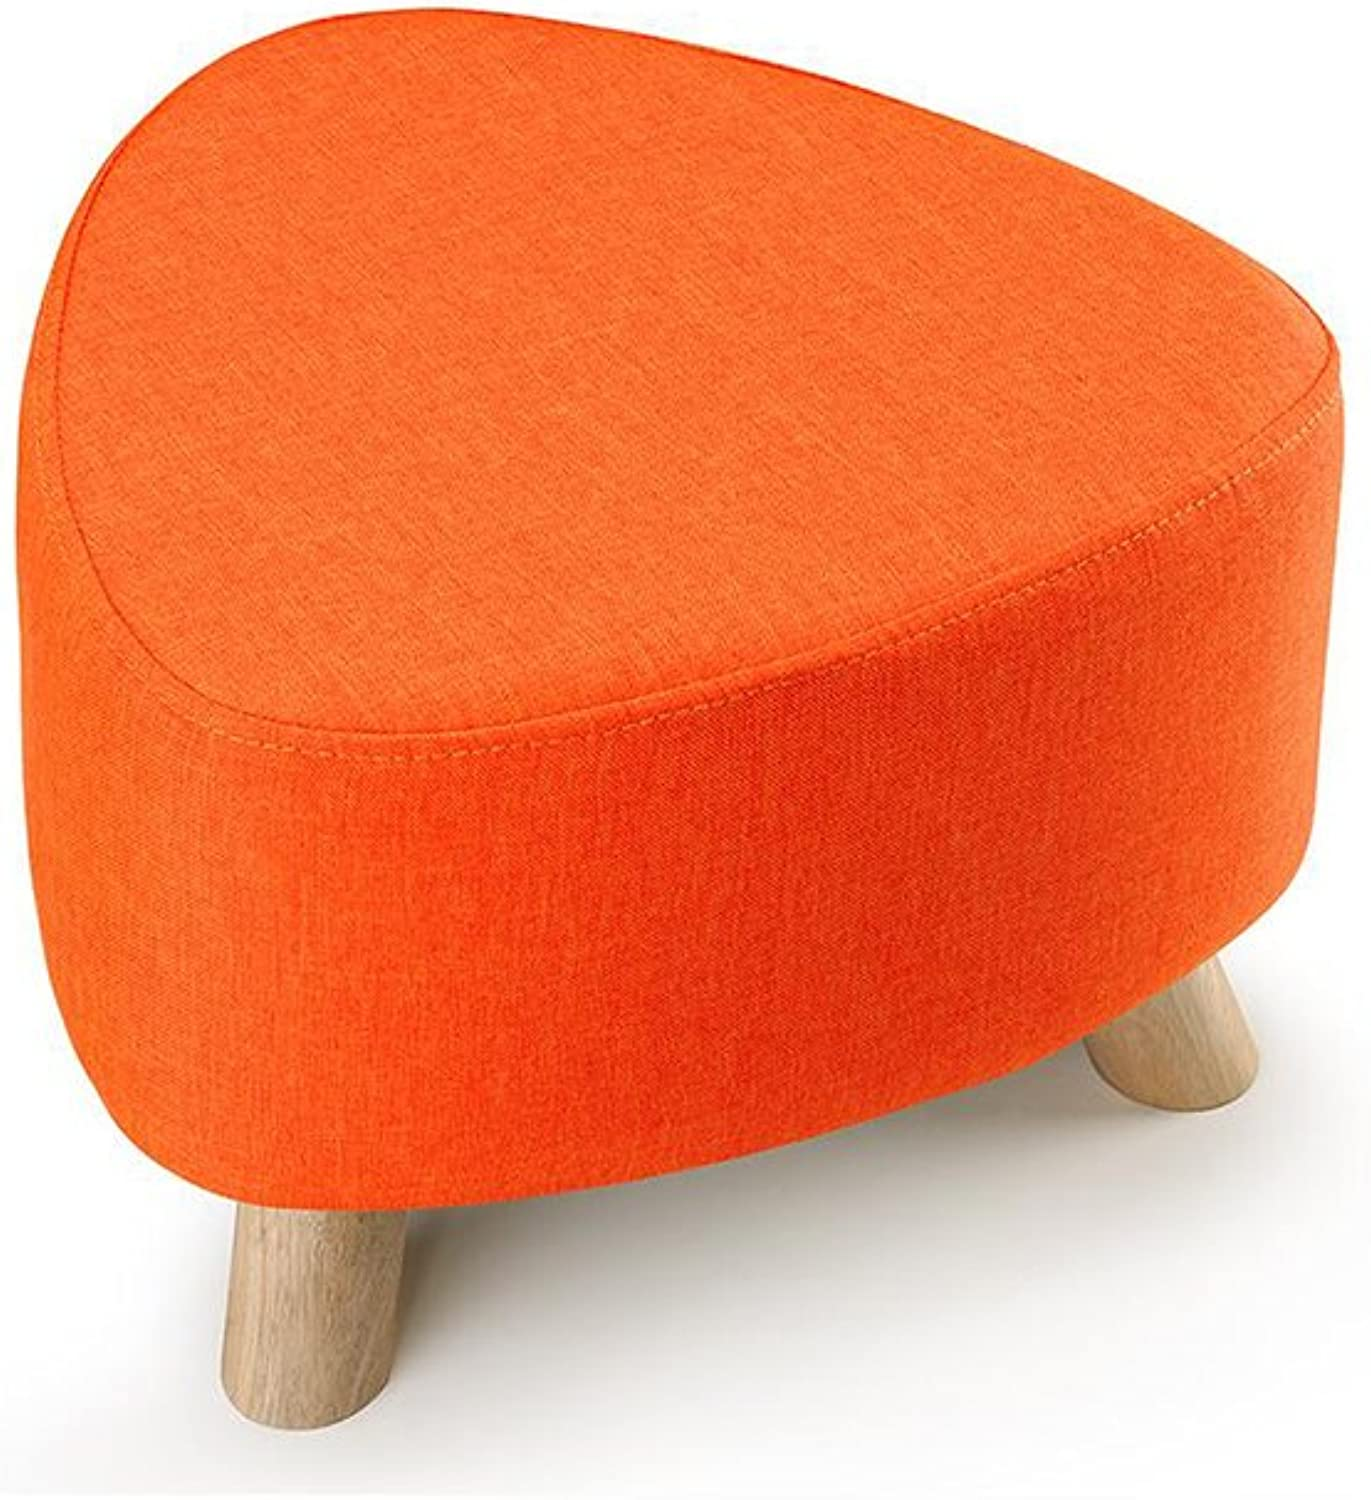 European Chair Three-Legged Small Stool Removable and Washable shoes Stool Fabric Sofa Stool Solid Wood pier (color   orange)